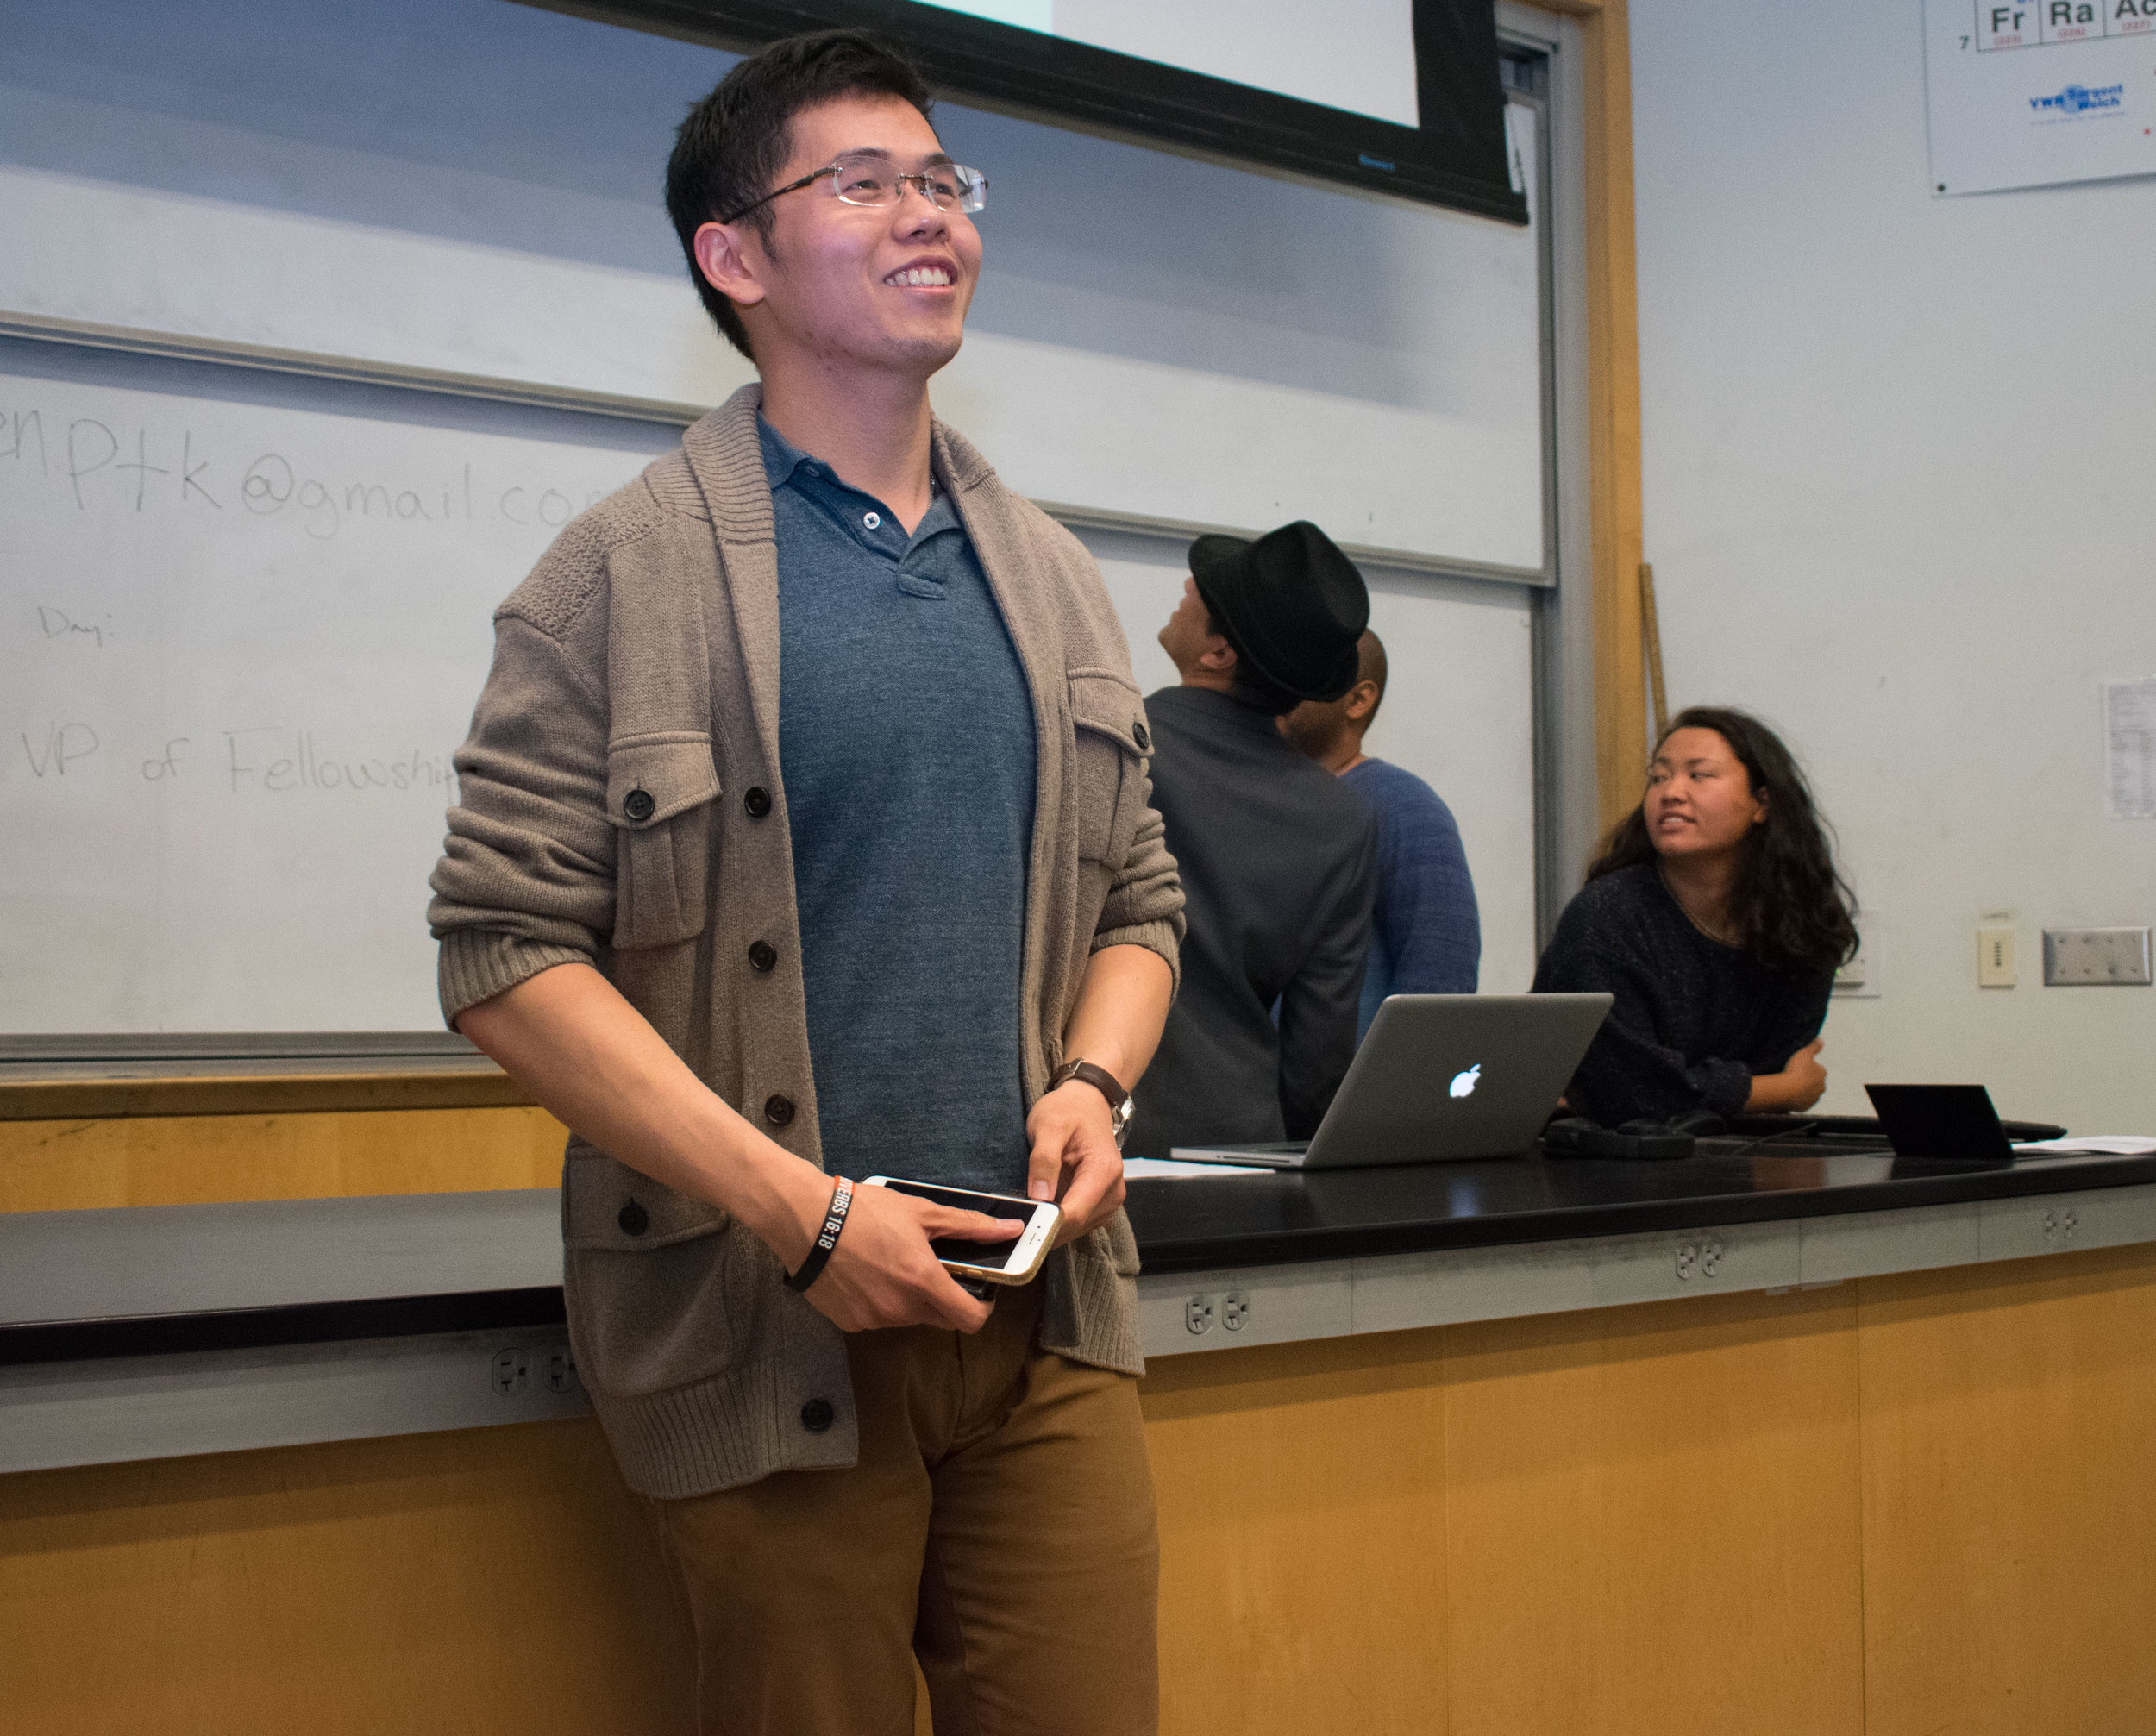 Ryan Ang, the Executive Vice President for Phi Theta Kappa, an honor society at Santa Monica College leads the weekly meeting in the Science building, room 140 at 11:15 a.m. on Tuesday, March 20 in Santa Monica, California. Students wishing to join must pay an $80 membership fee, which is a one-time fee during their time at the college, but students have to maintain a 3.0 GPA. Benefits that PTK advertise are scholarships, volunteer opportunities, and a transcript notation. (Ethan Lauren/Corsair Photo)